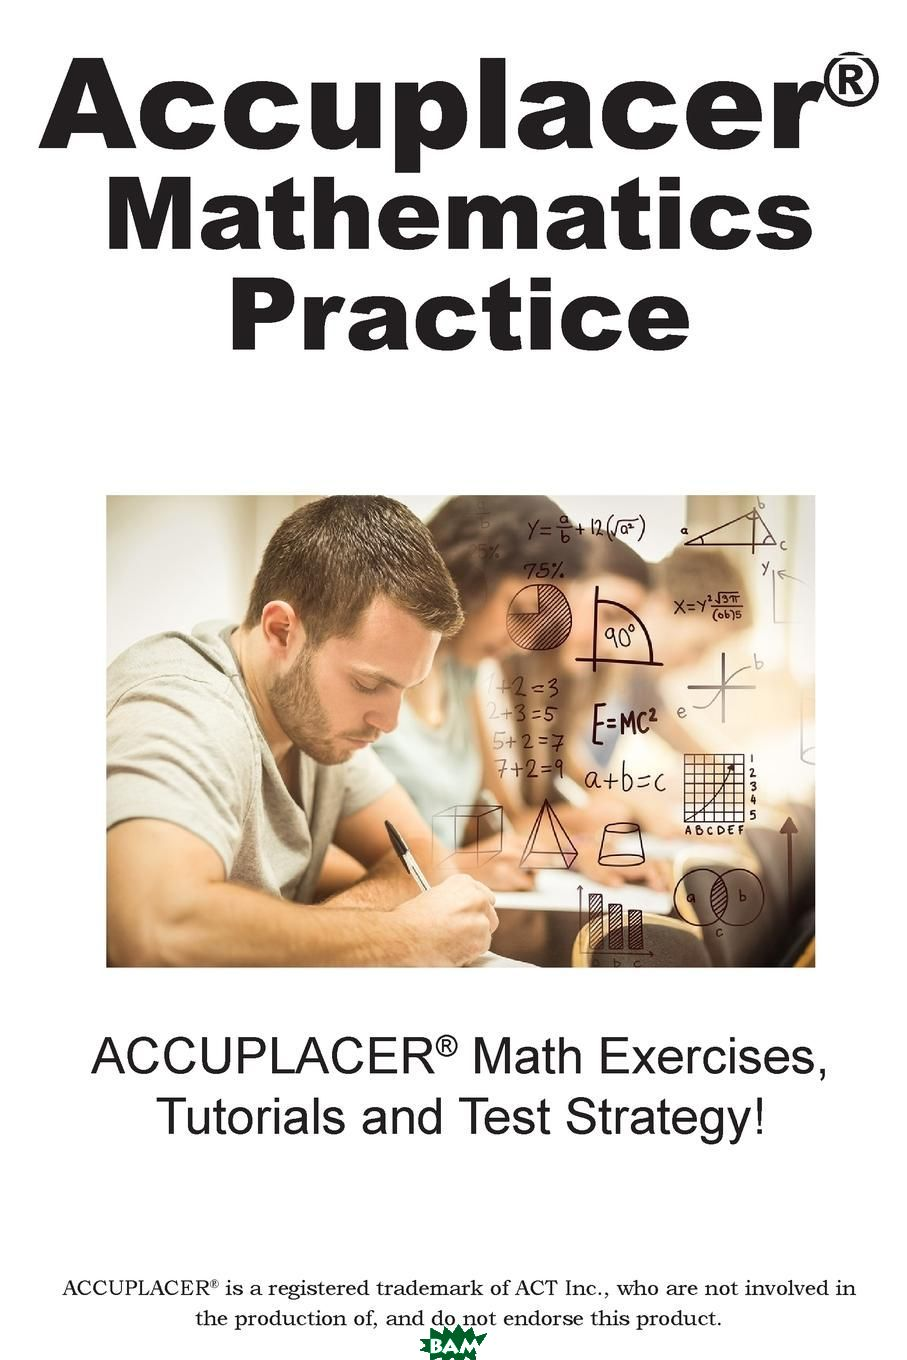 ACCUPLACER Mathematics Practice. Math Exercises, Tutorials and Multiple Choice Strategies